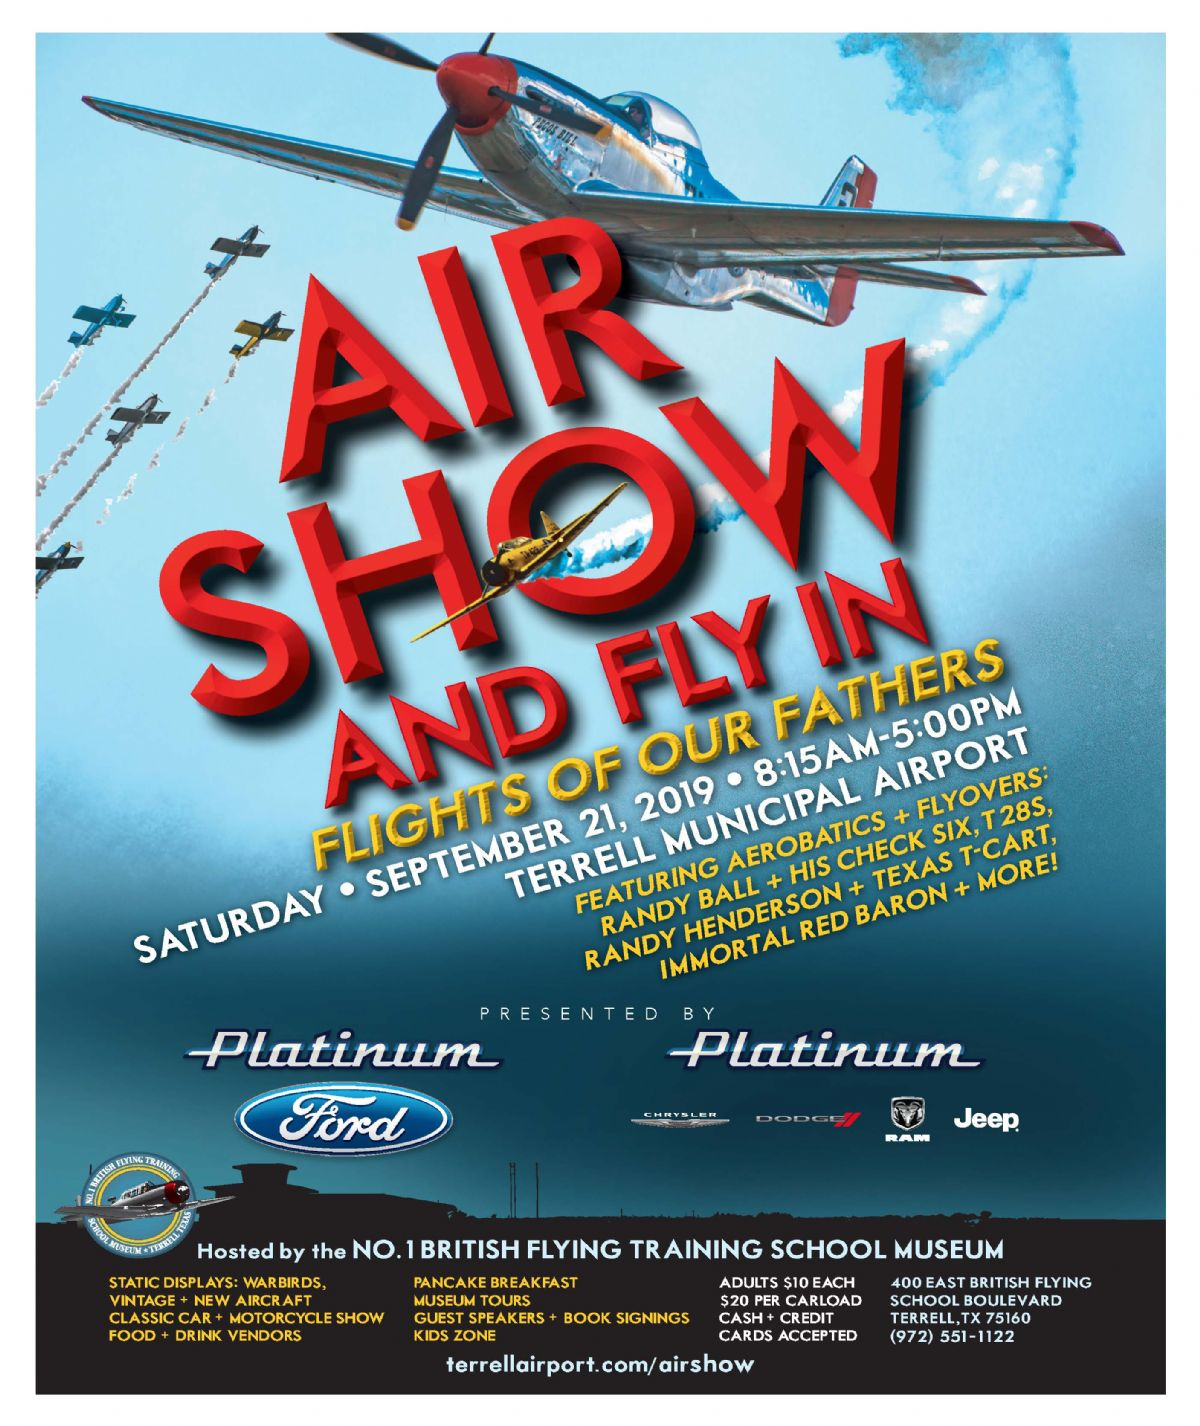 Flights of Our Fathers Air Show & Fly-In